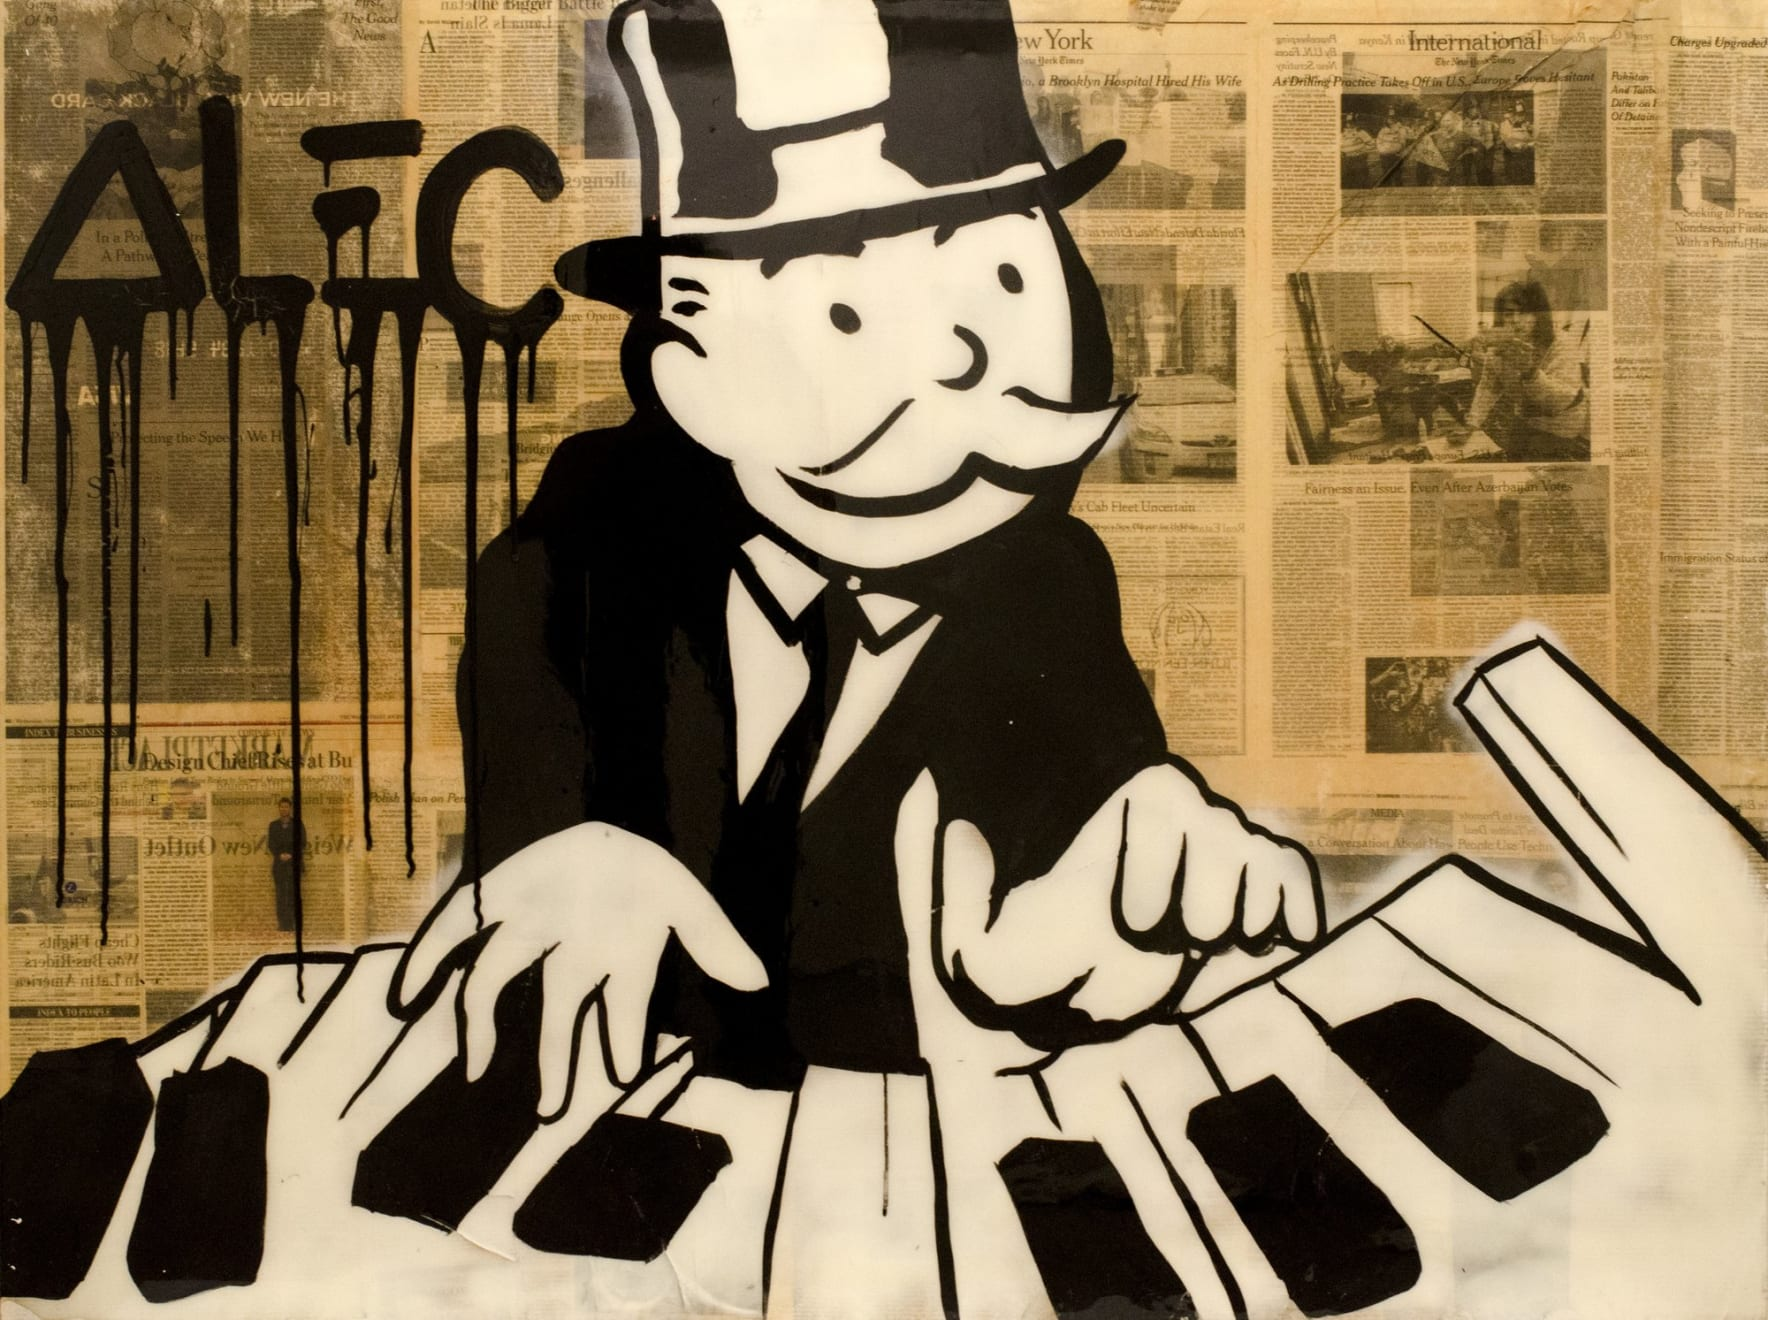 Alec Monopoly DJ - Then Play On, 2013